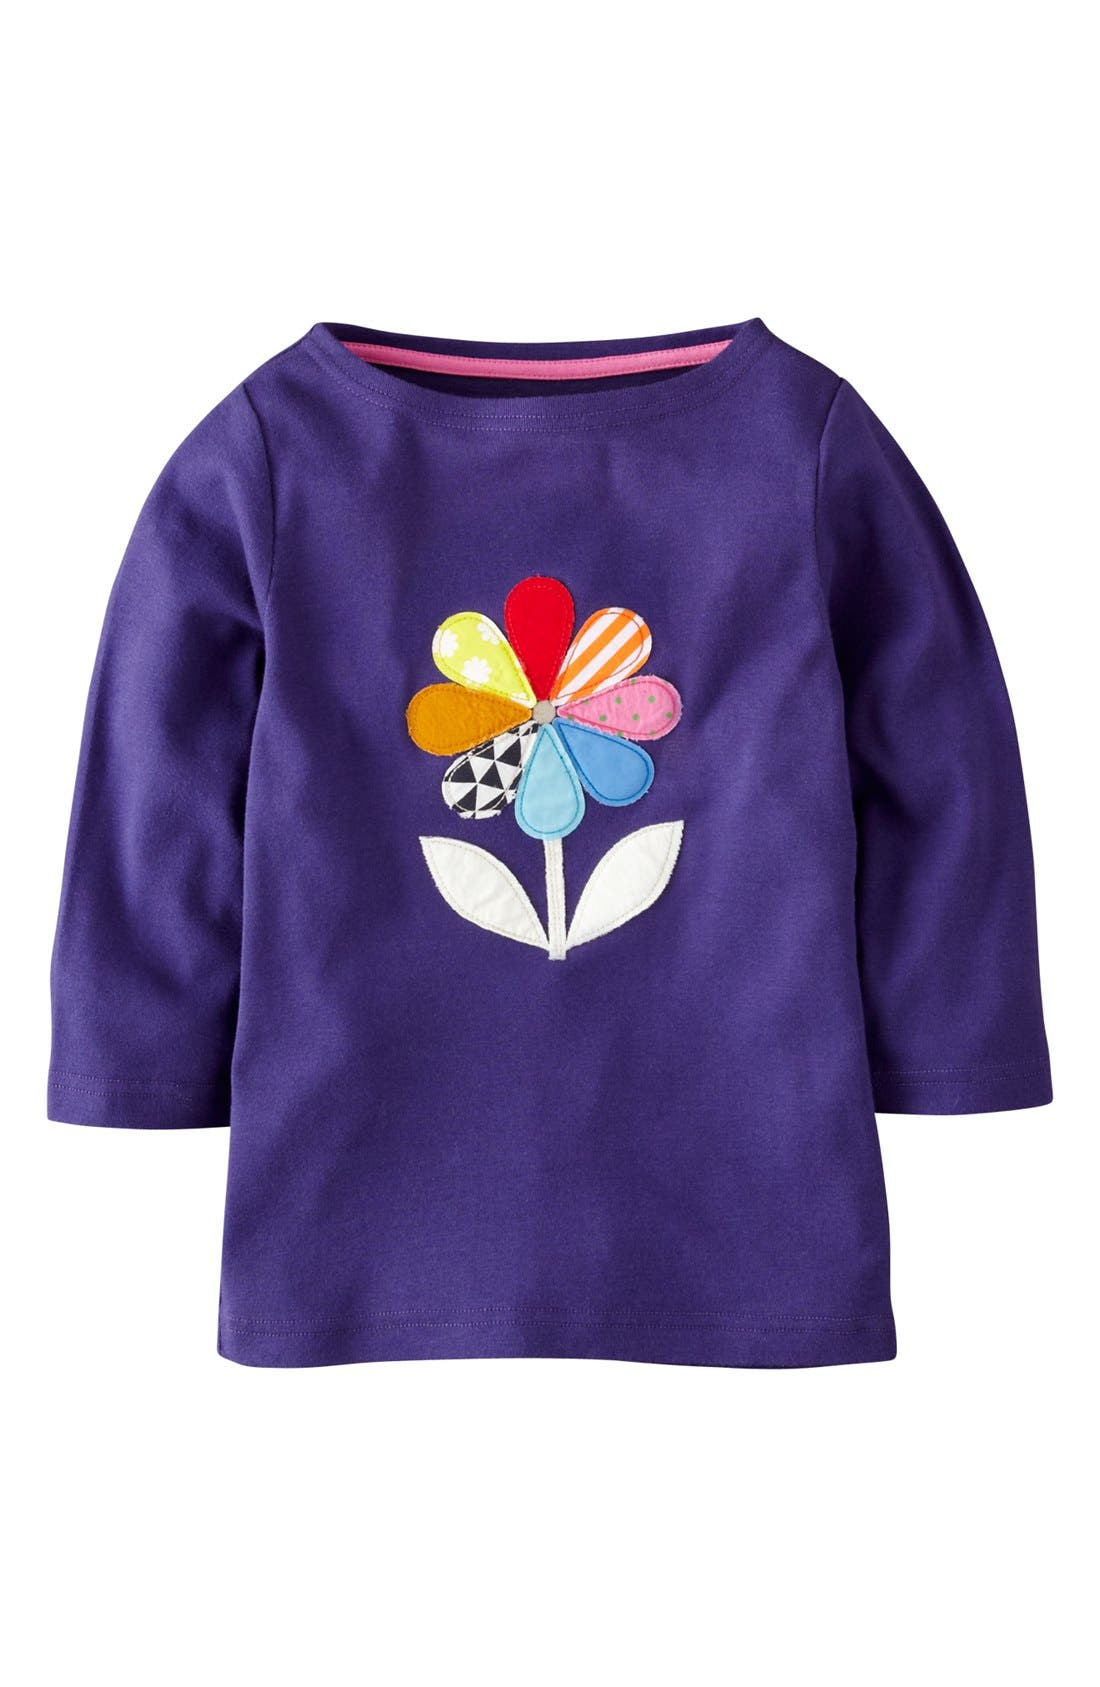 Main Image - Mini Boden 'Kaleidoscope Appliqué' Tee (Toddler Girls)